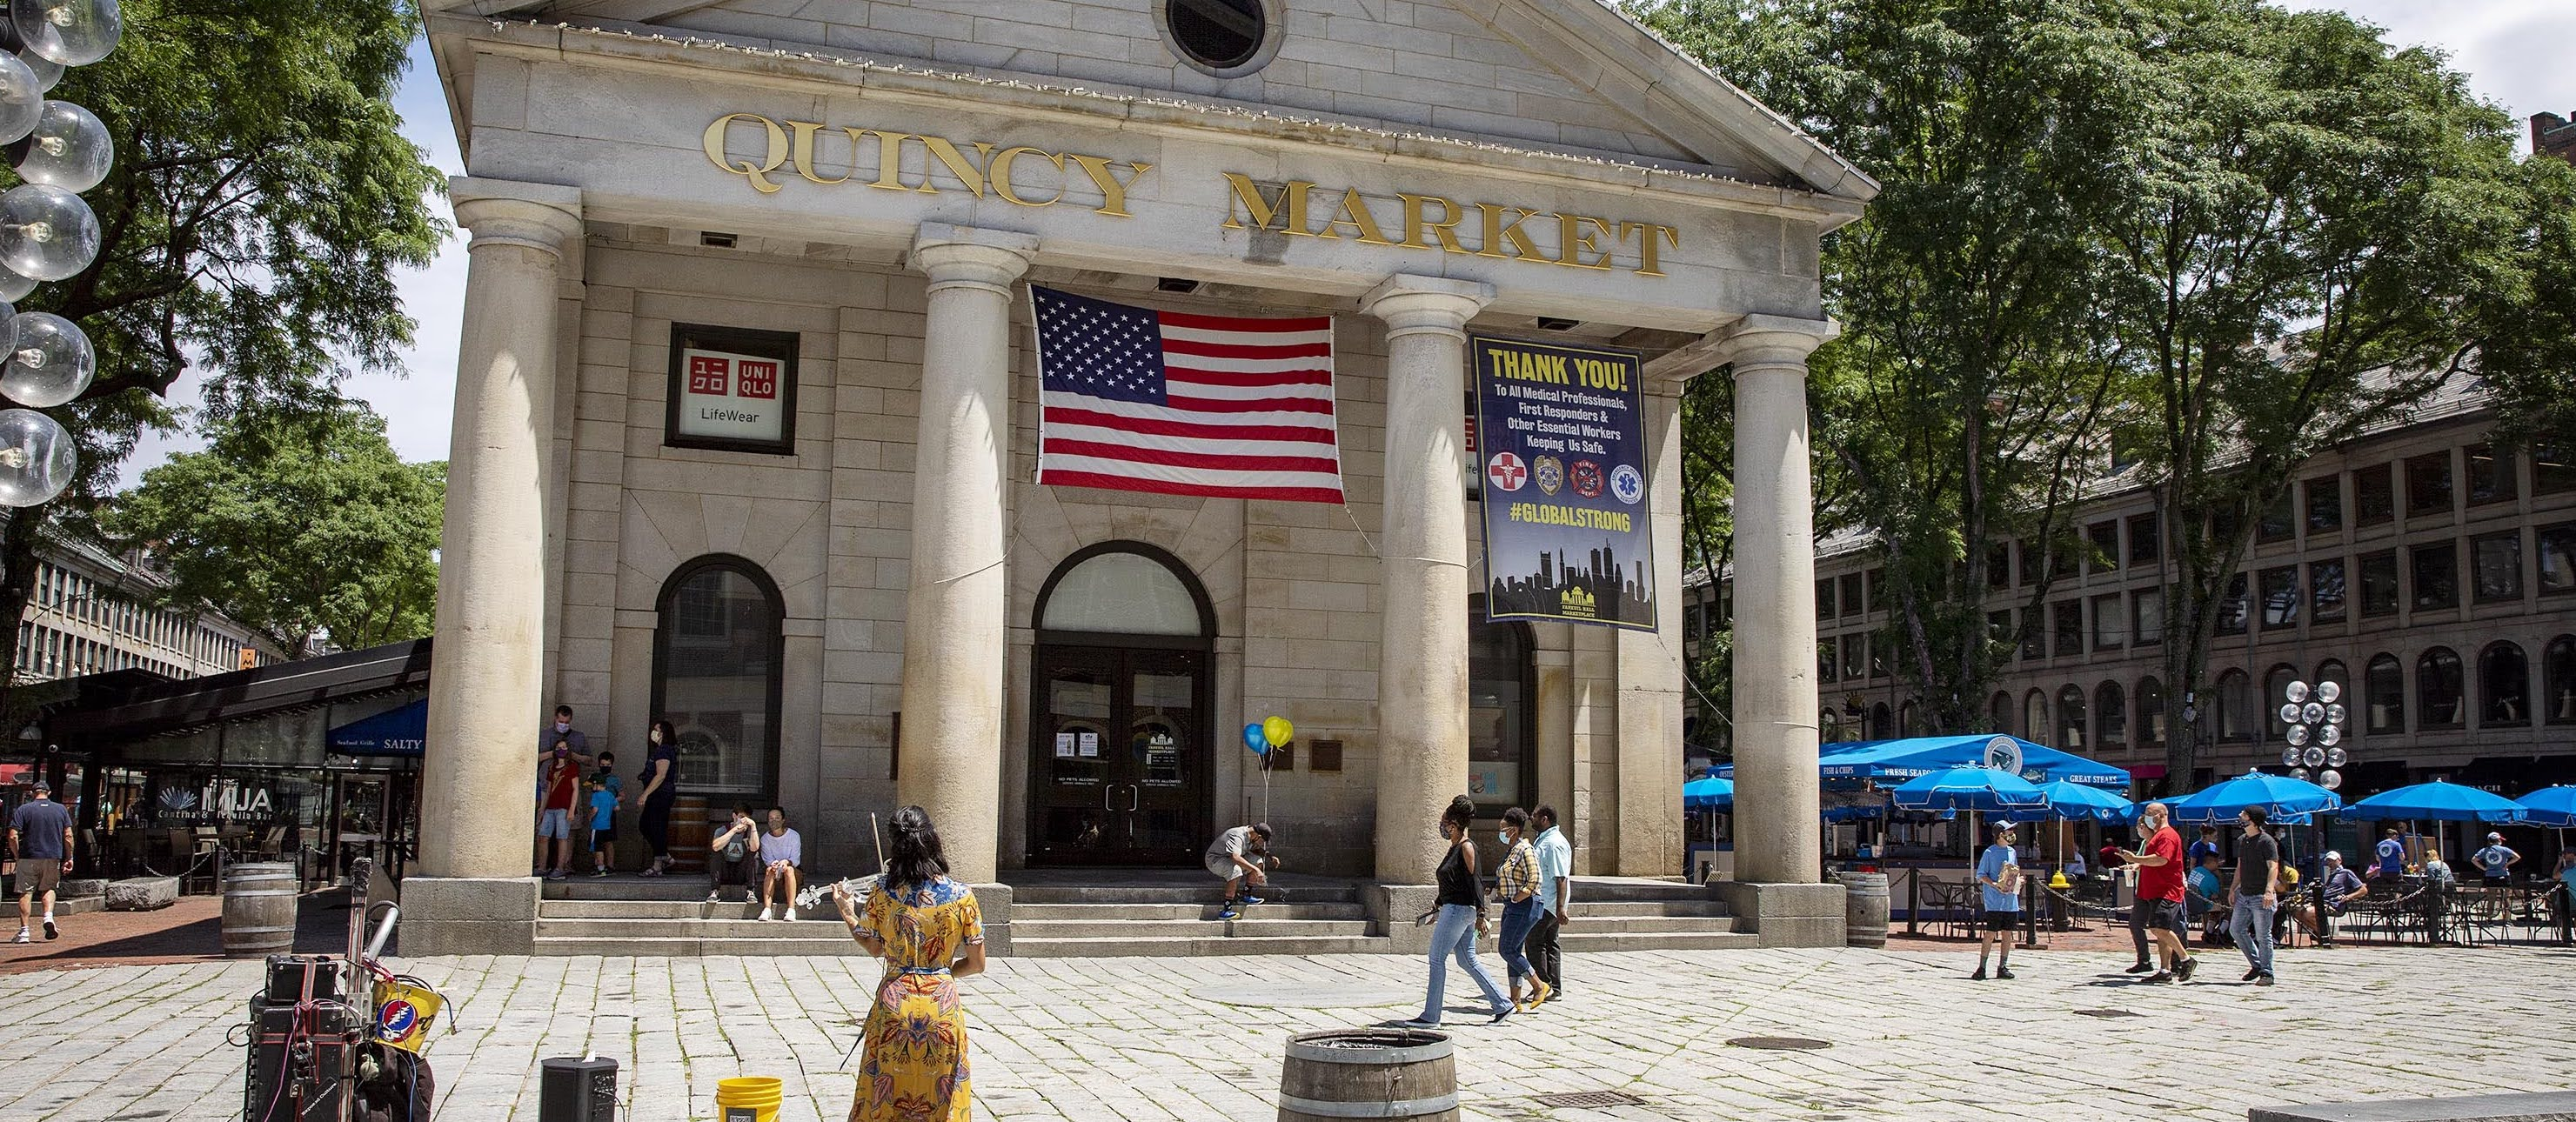 People begin to return to Quincy Market at lunchtime, as the market reopens after being closed to slow the spread of the coronavirus. (Robin Lubbock/WBUR)